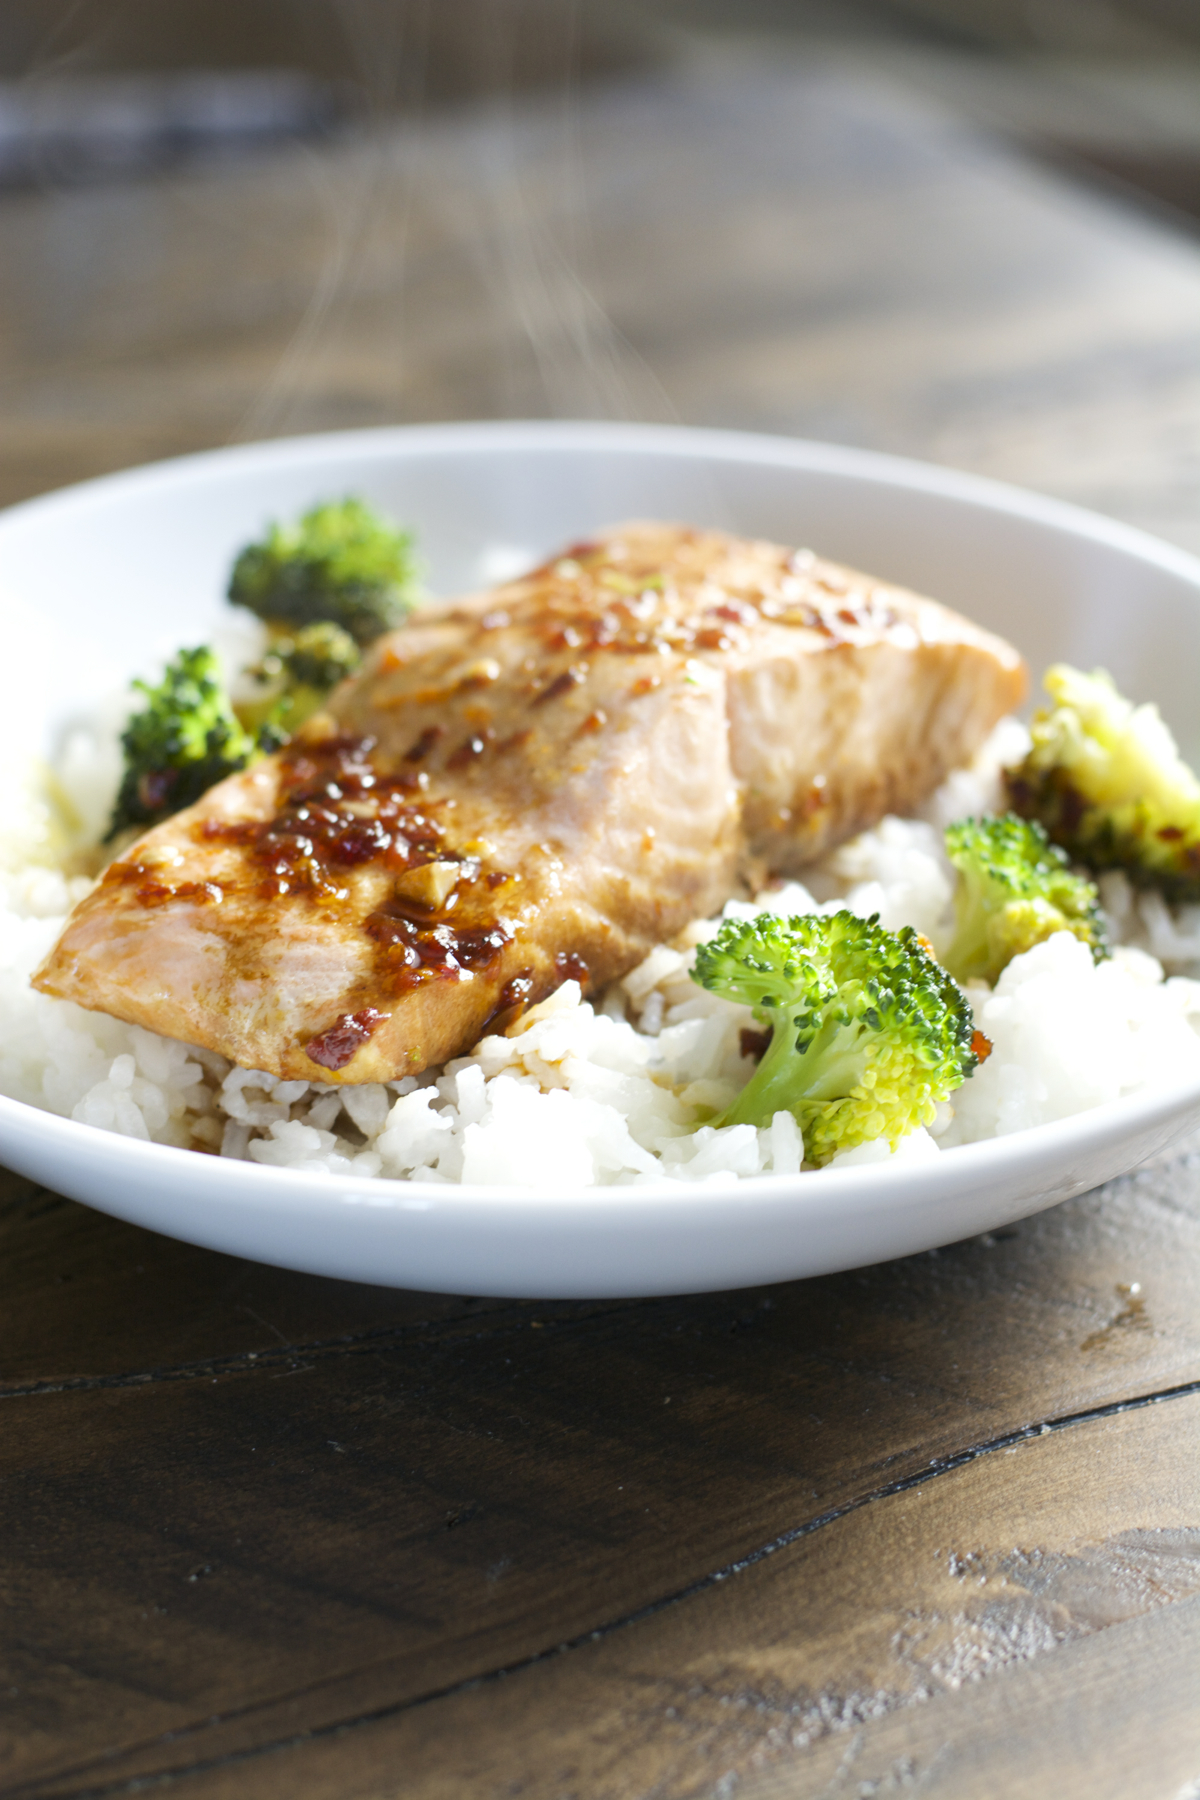 a salmon and broccoli bowl with rice